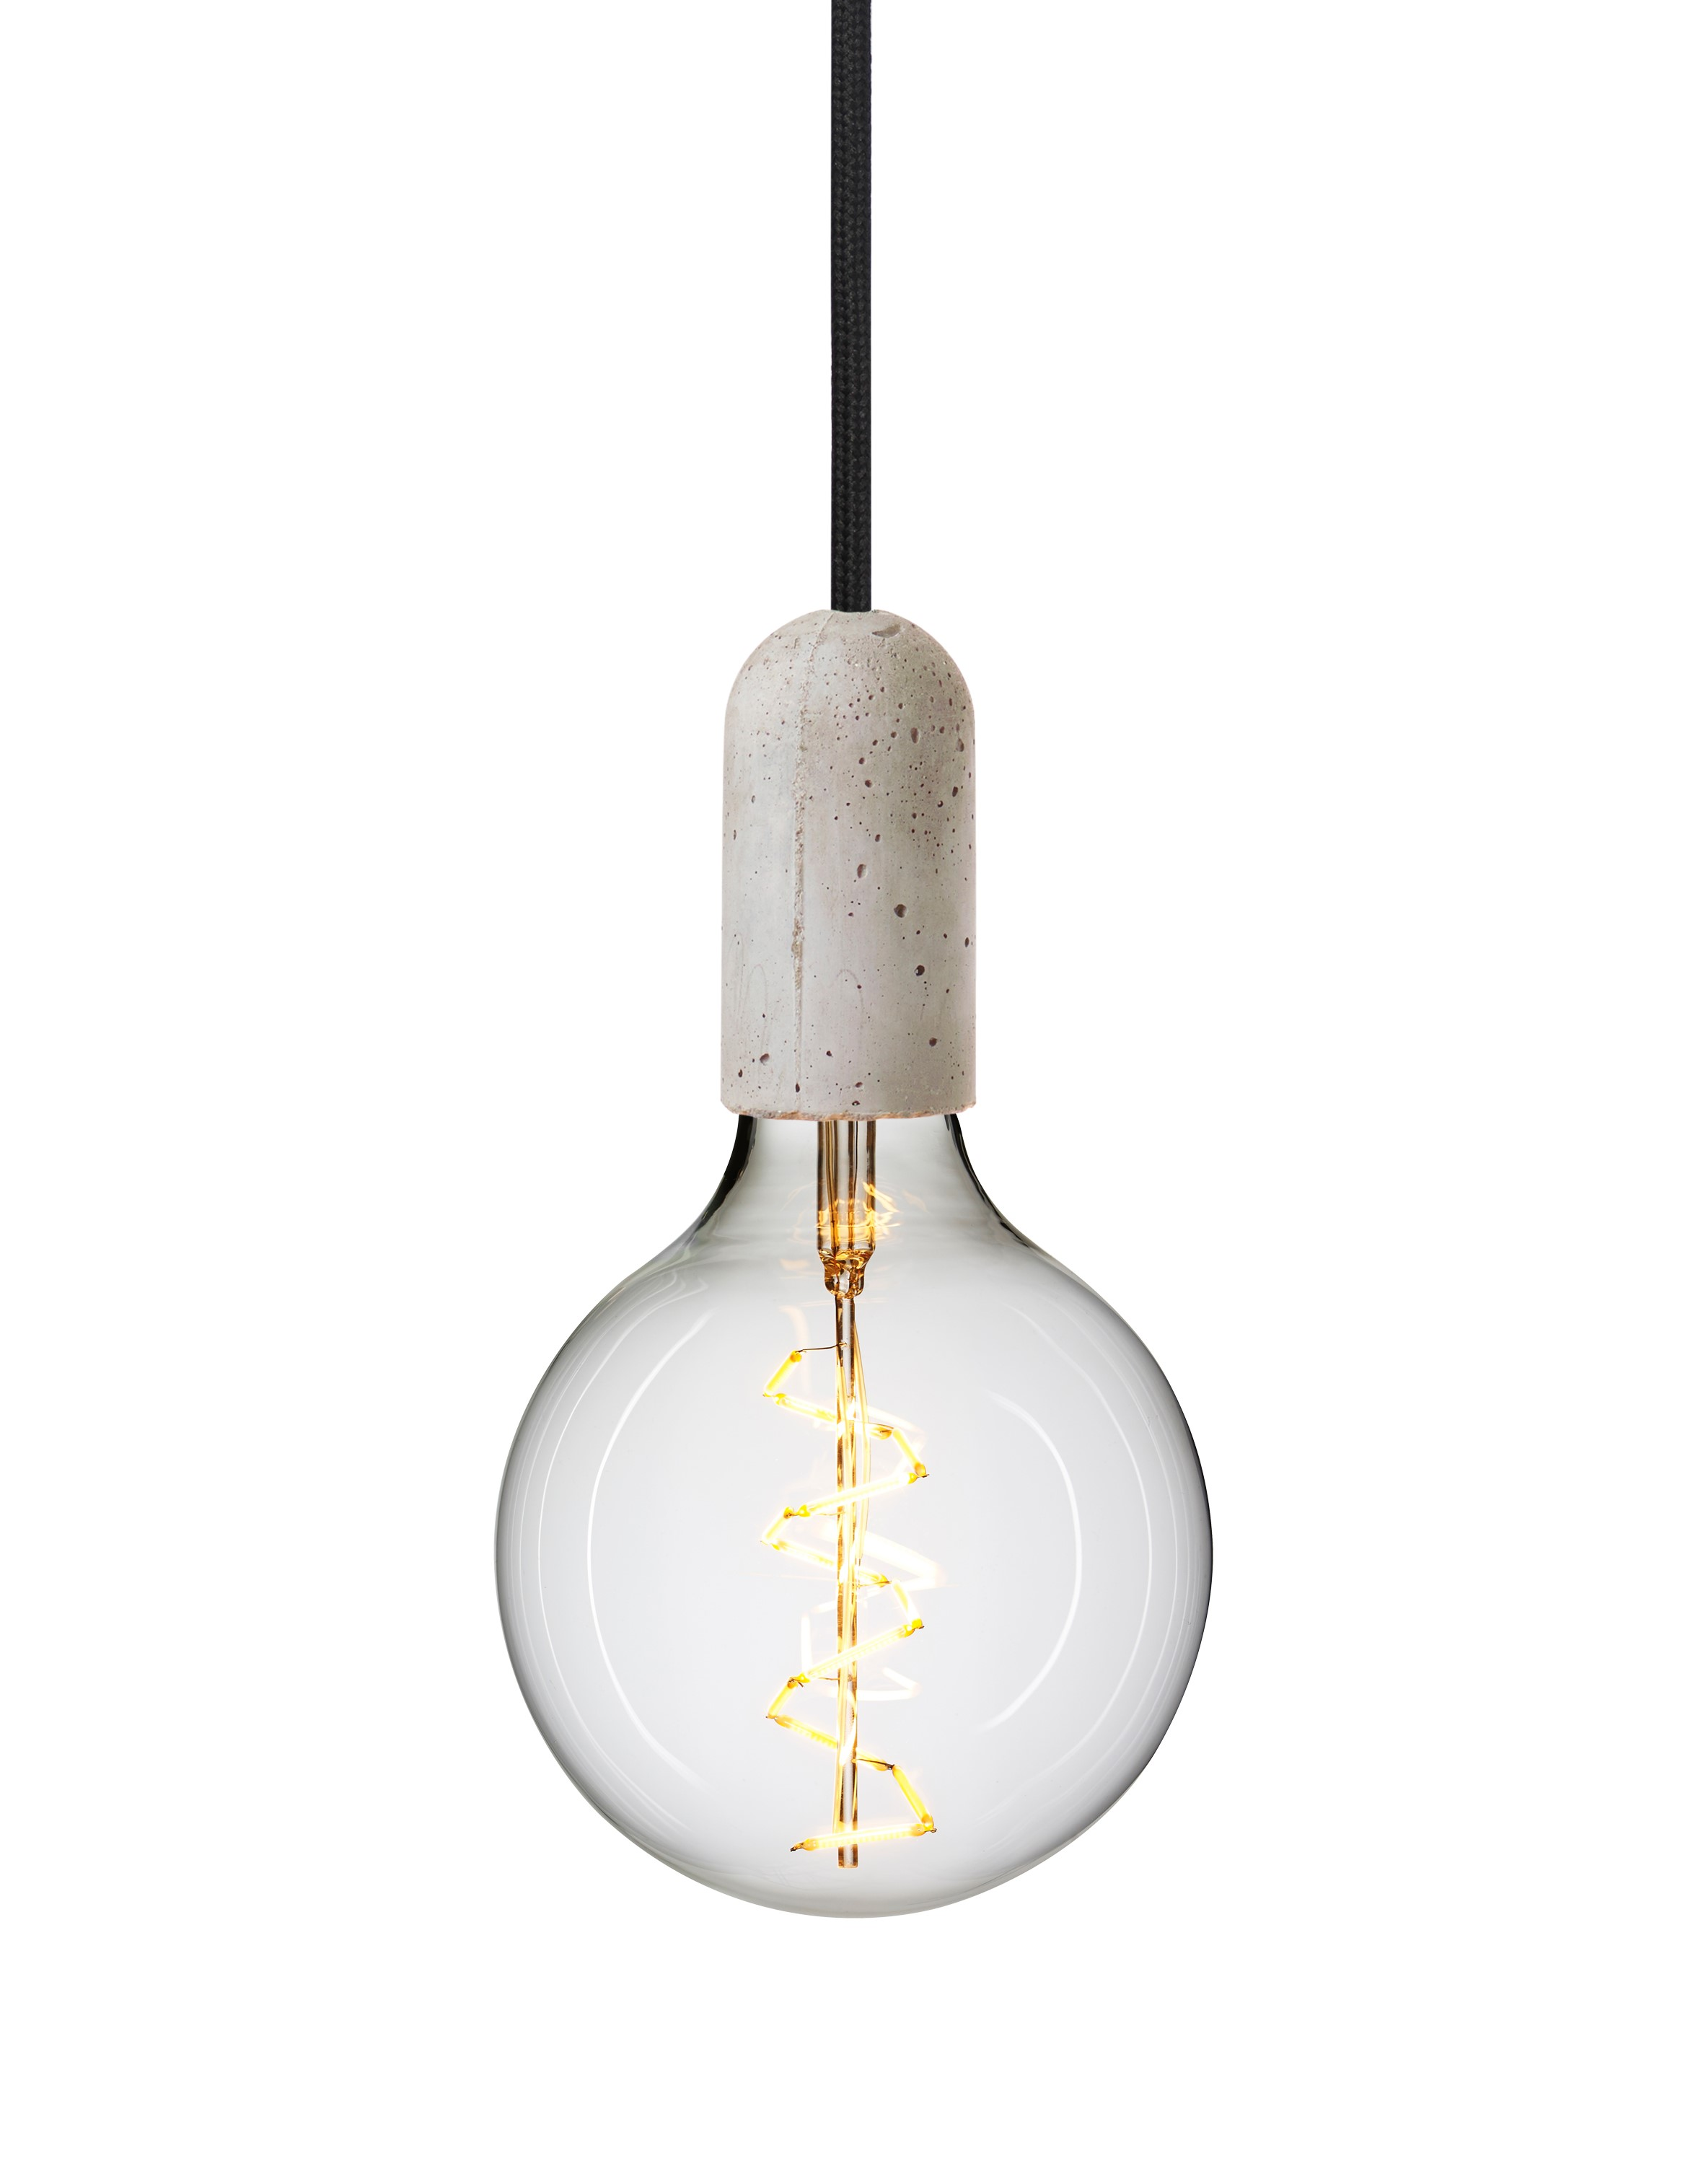 concrete products shades led bell of pendant natural shaped light